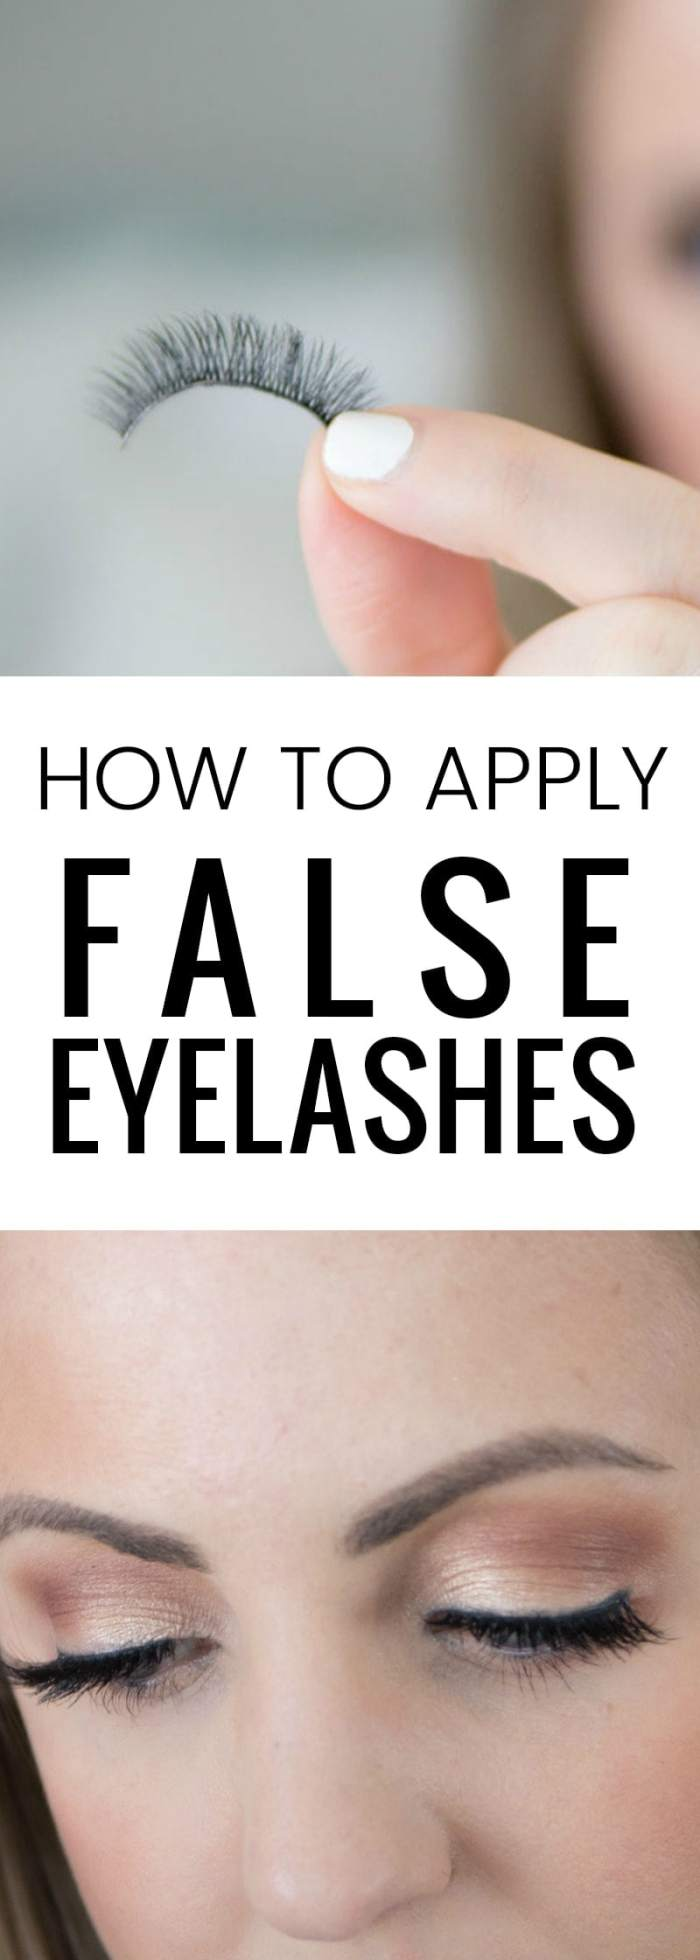 how to apply false eyelashes - it's easier than you think!